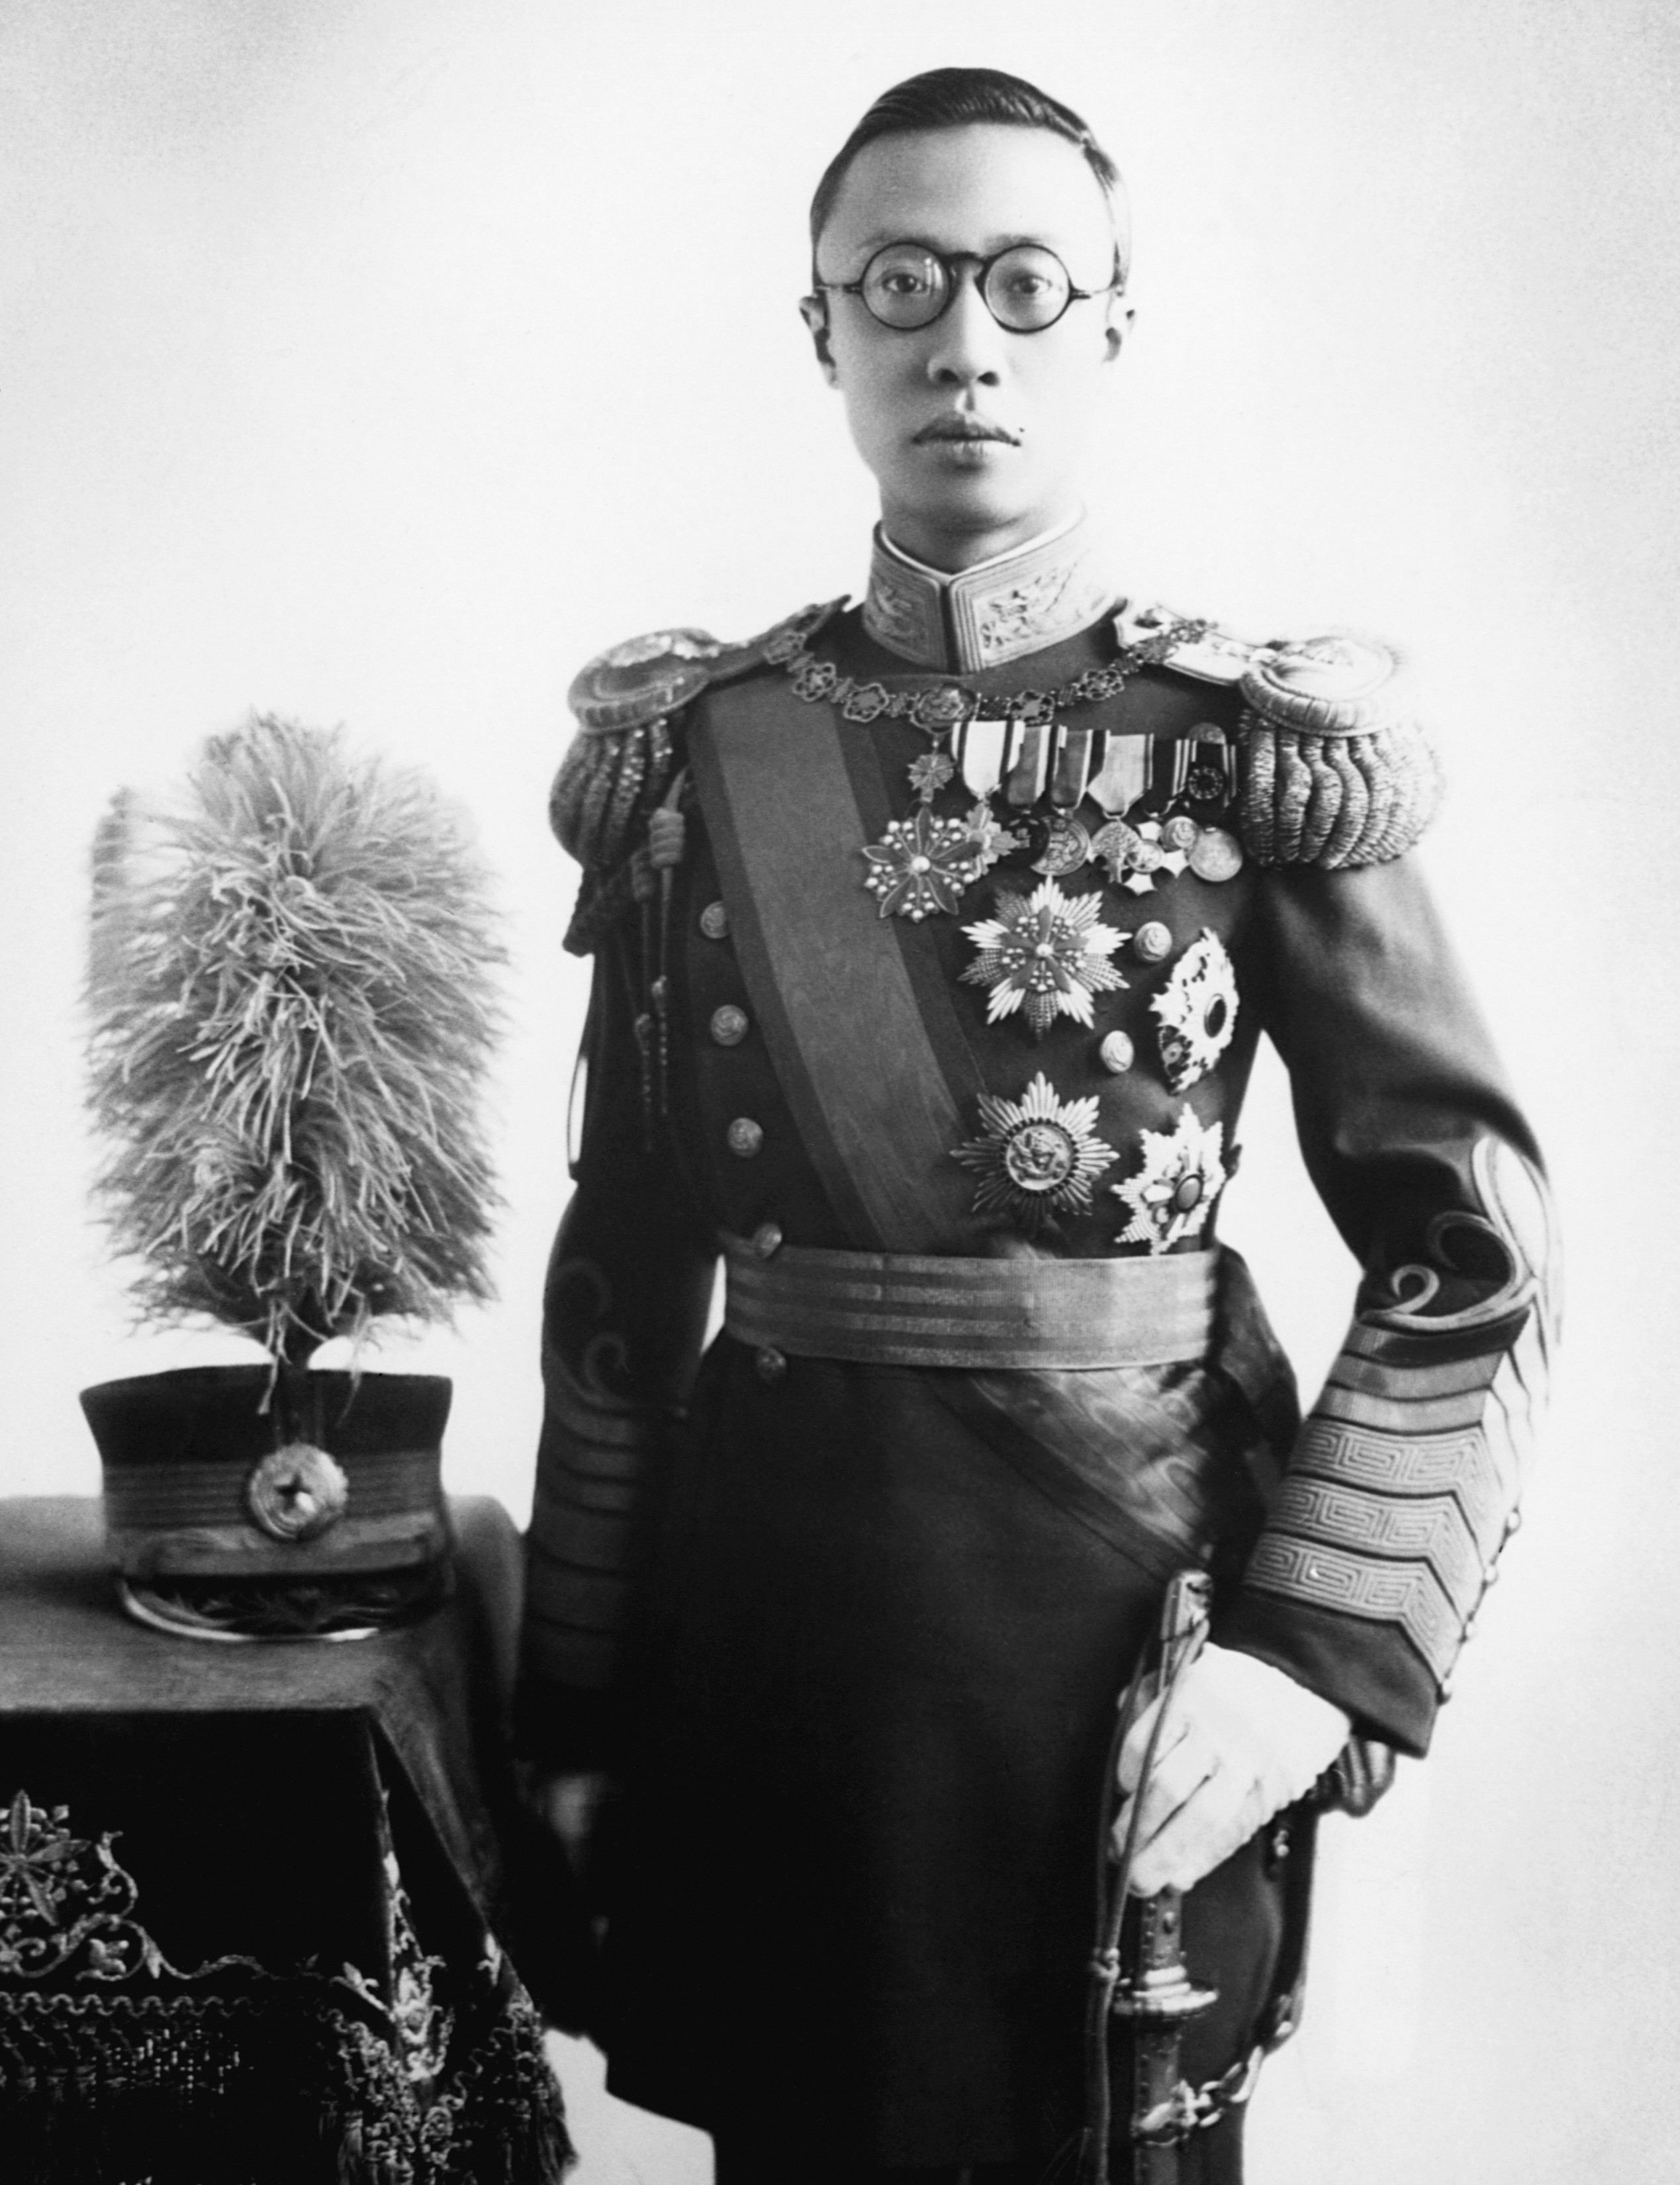 Emperor Pu Yi (known as Henry Puyi in the west) was the last emperor of China. He was the first emperor of Manchuko from 1934-35, a puppet monarch for the Japanese. - photographed: ca. 1940